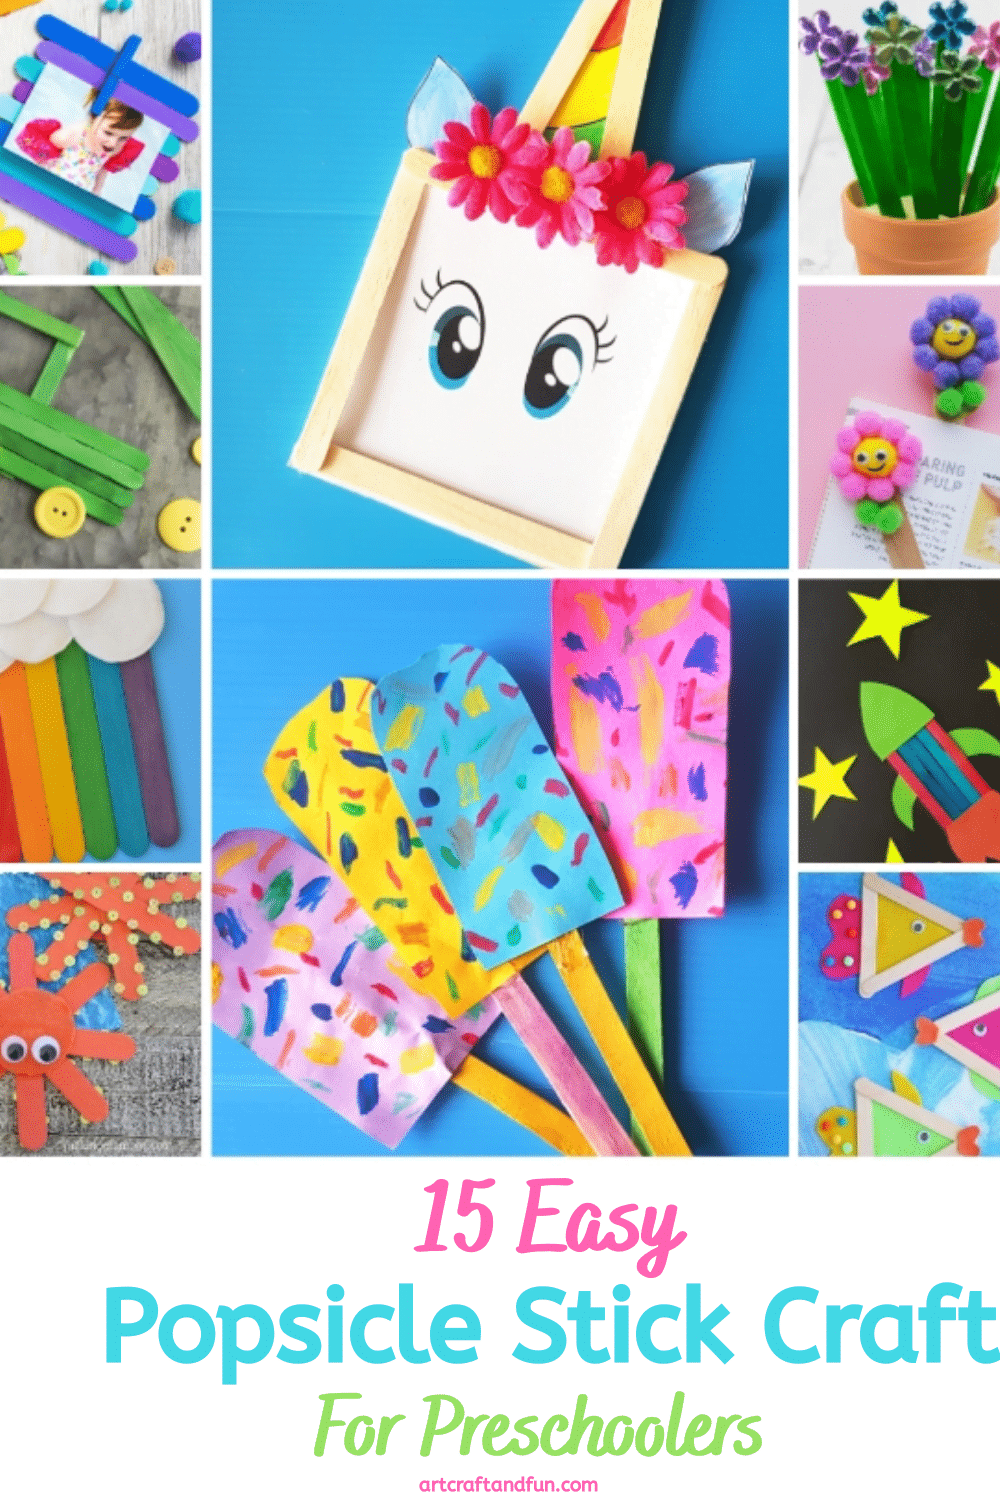 Easy Popsicle Stick Crafts For Preschoolers